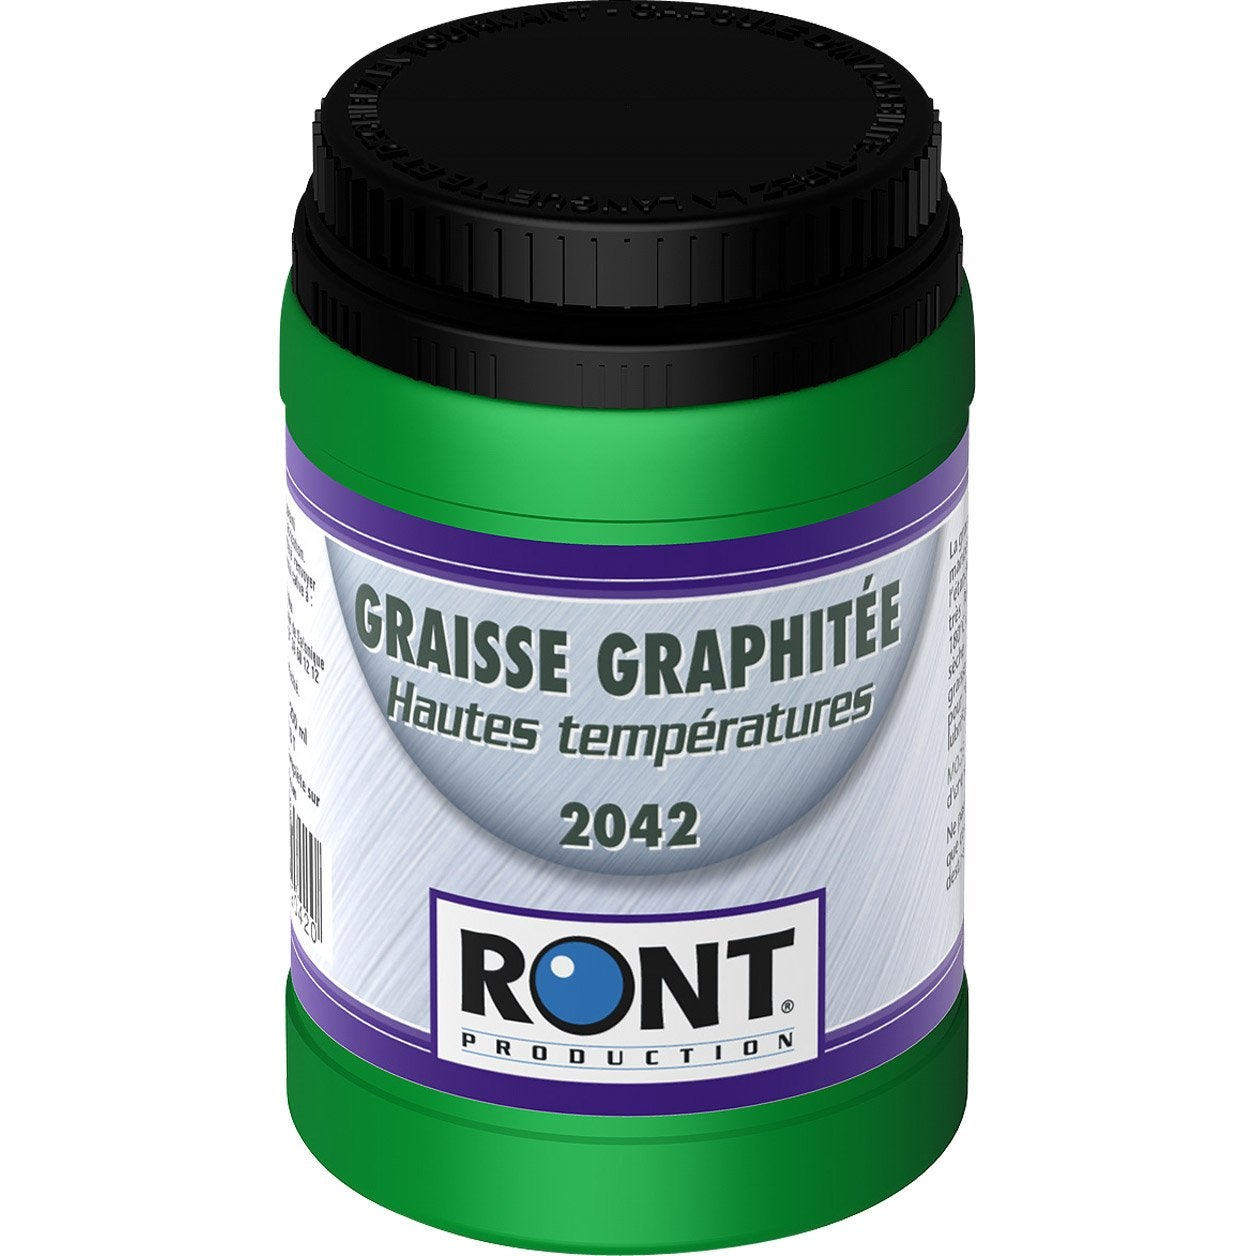 Graisse graphit e en pot 200 g ront production leroy merlin for Peinture haute temperature leroy merlin